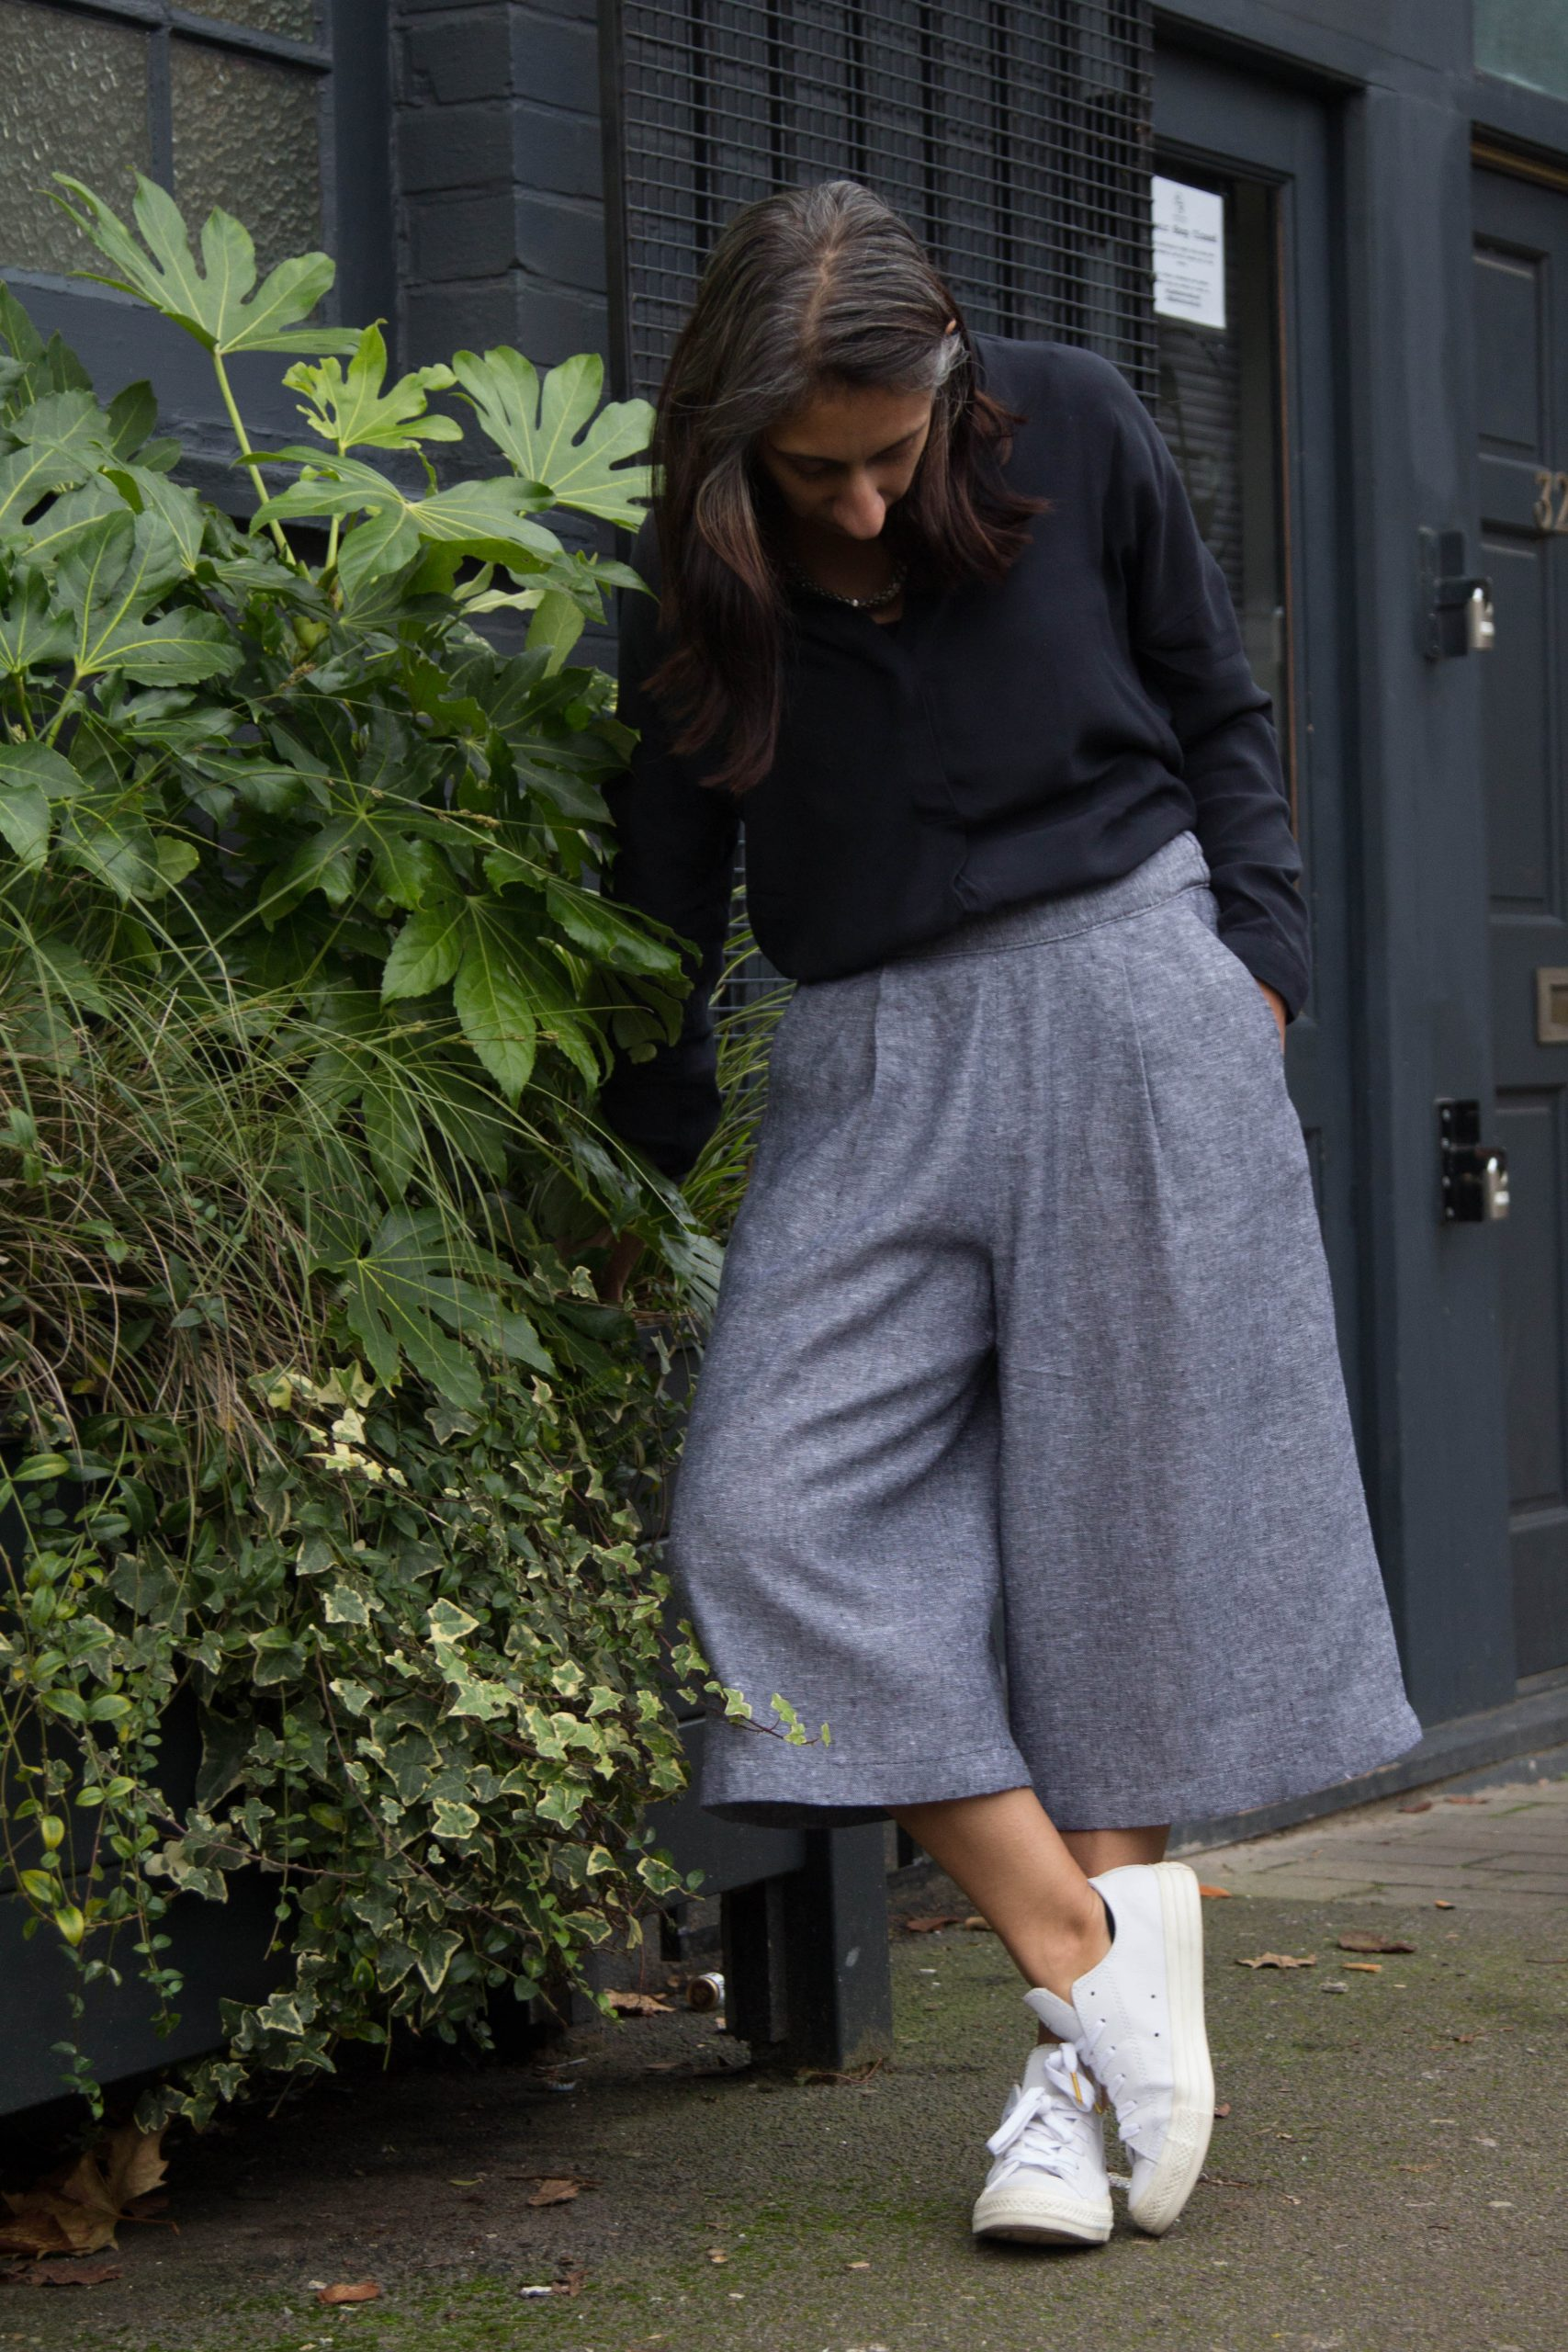 Woman wearing the Bolt Culottes sewing pattern by Make with Mandi. A culottes' pattern made in mid-weight wovens including cottons, linens or chambrays fabrics, featuring an elasticated back waistband, front pleats and pockets.